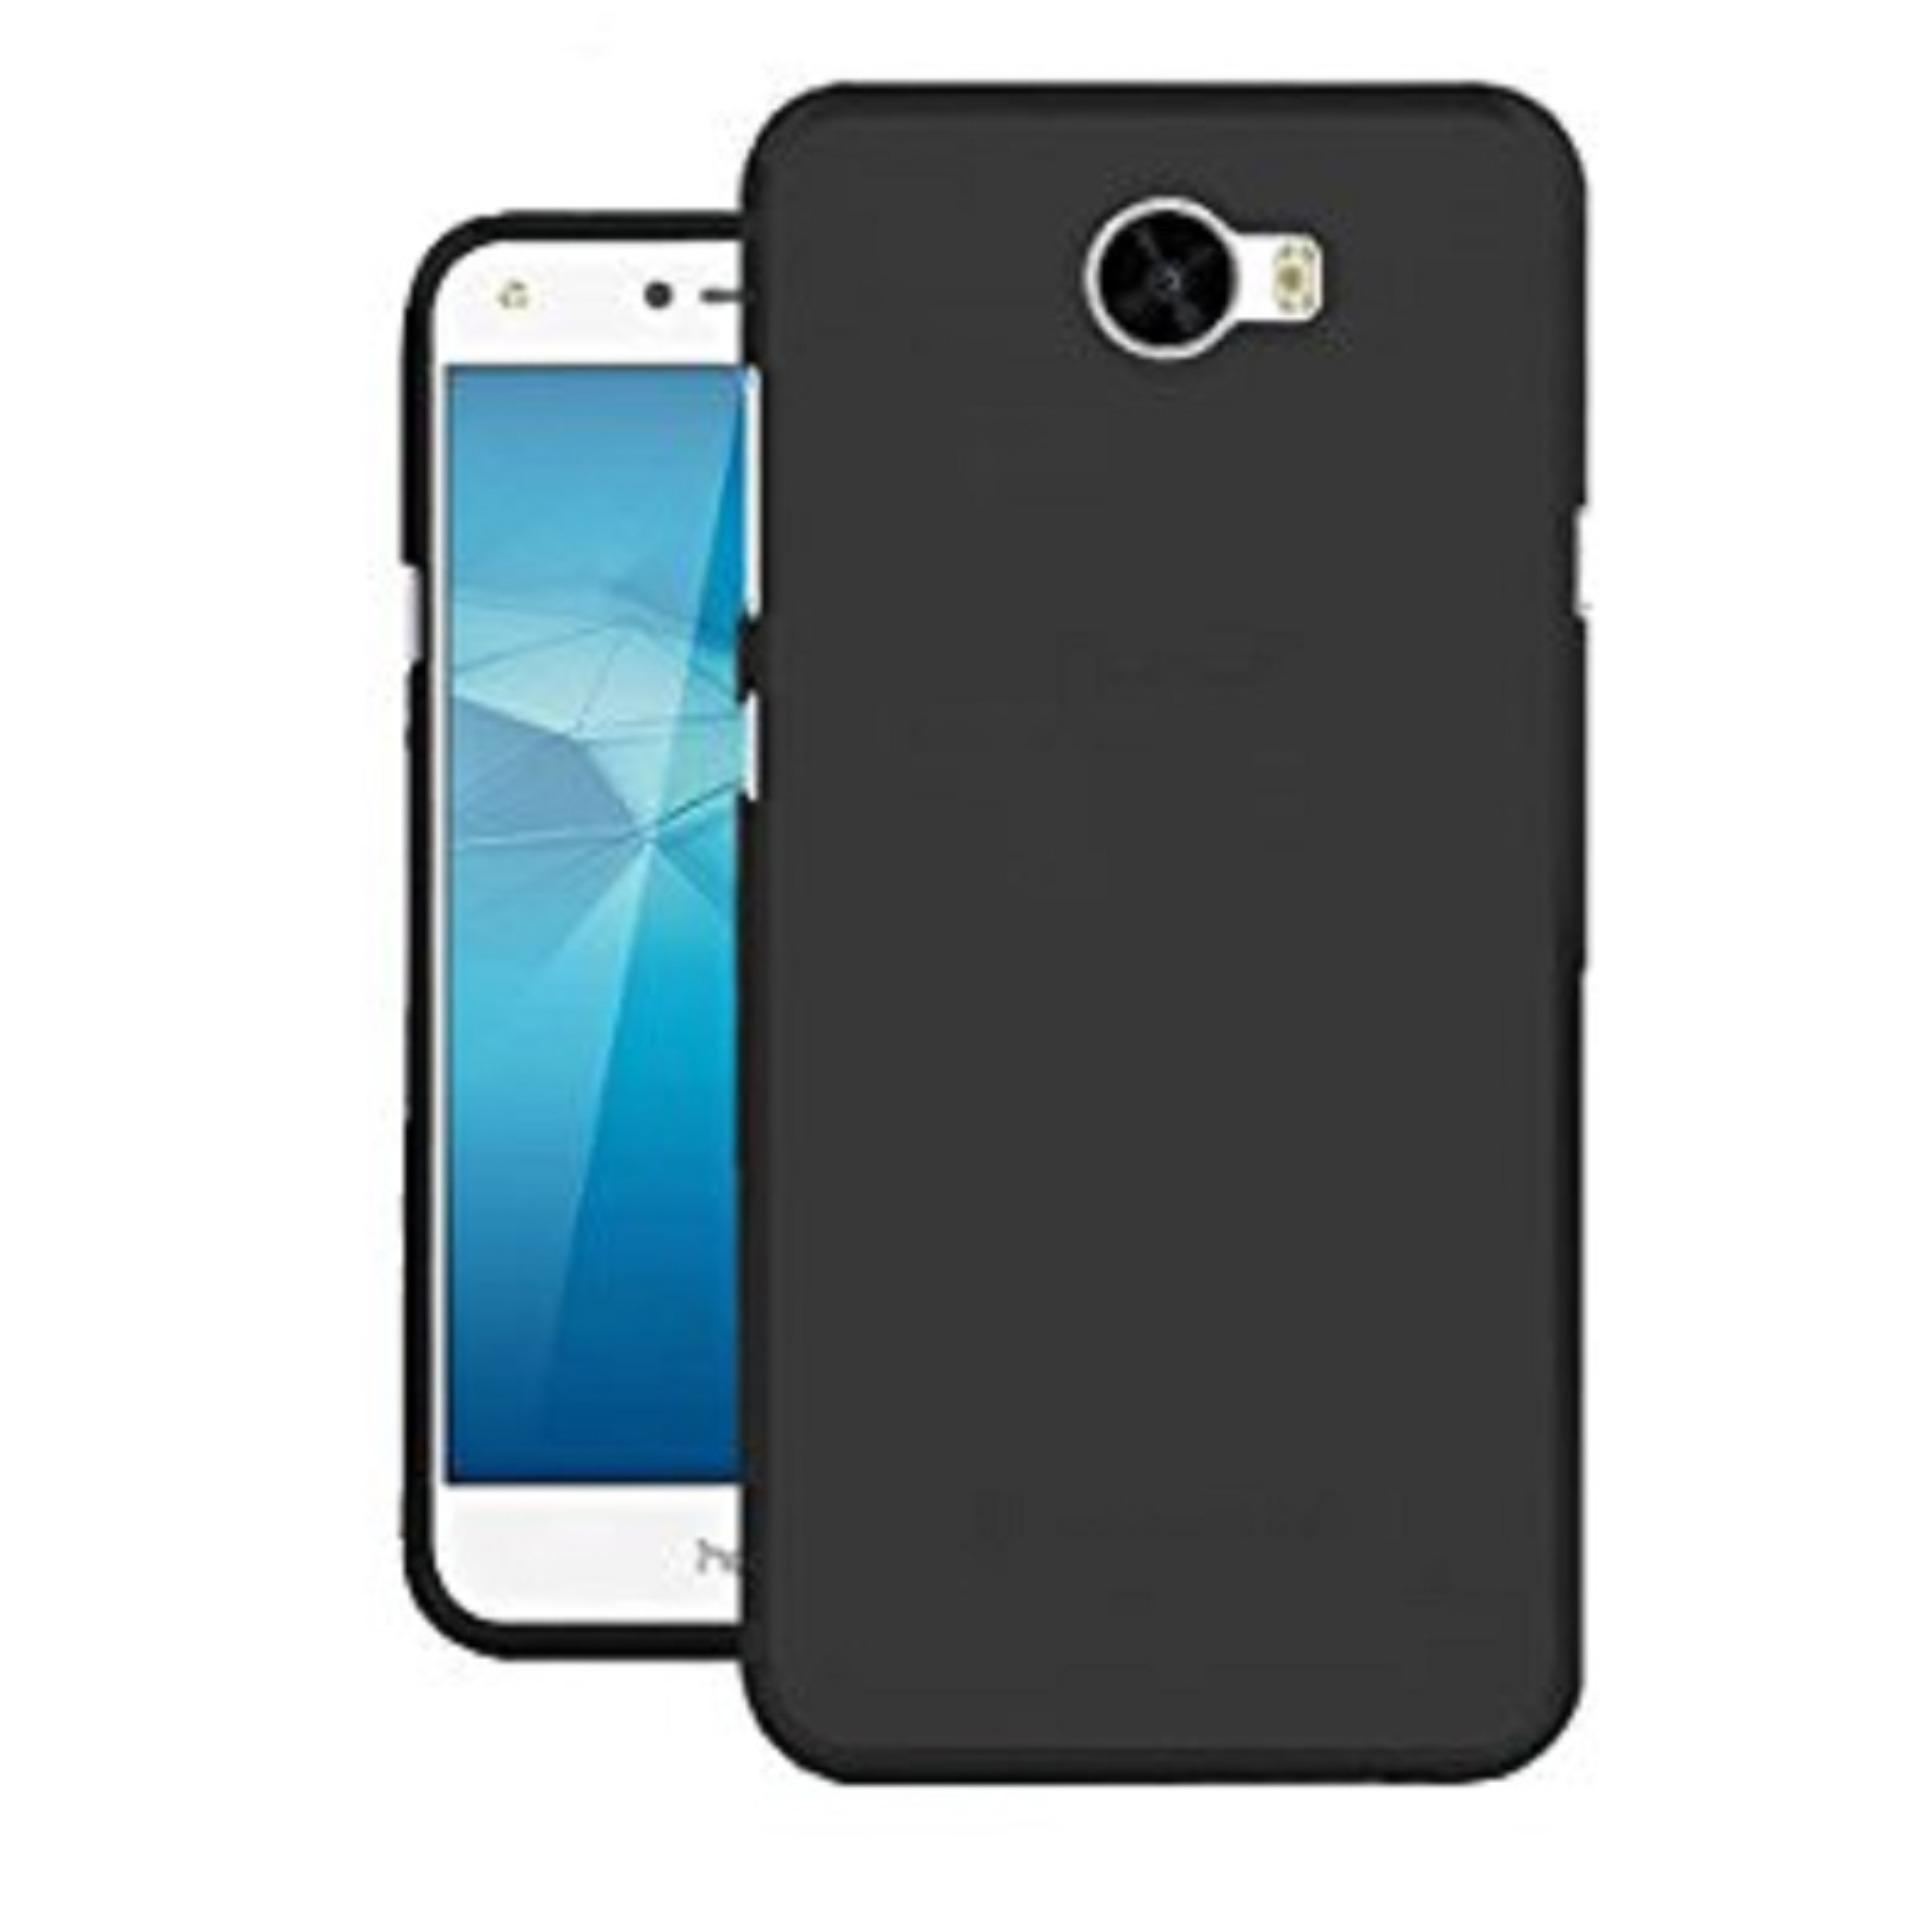 DarkNight for Huawei Ascend Y5ii / Y5 2 / Y5 (2016) | Slim Case Black Matte Softcase Premium (Anti